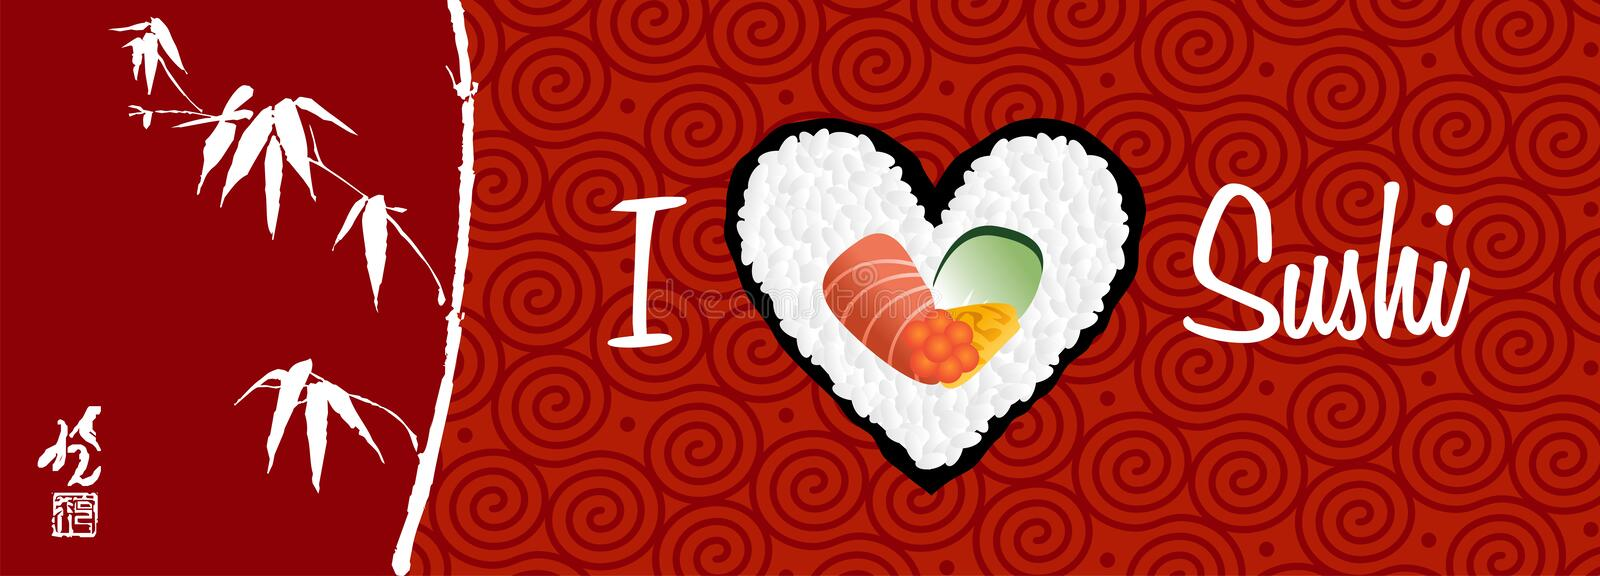 I love sushi banner background vector illustration